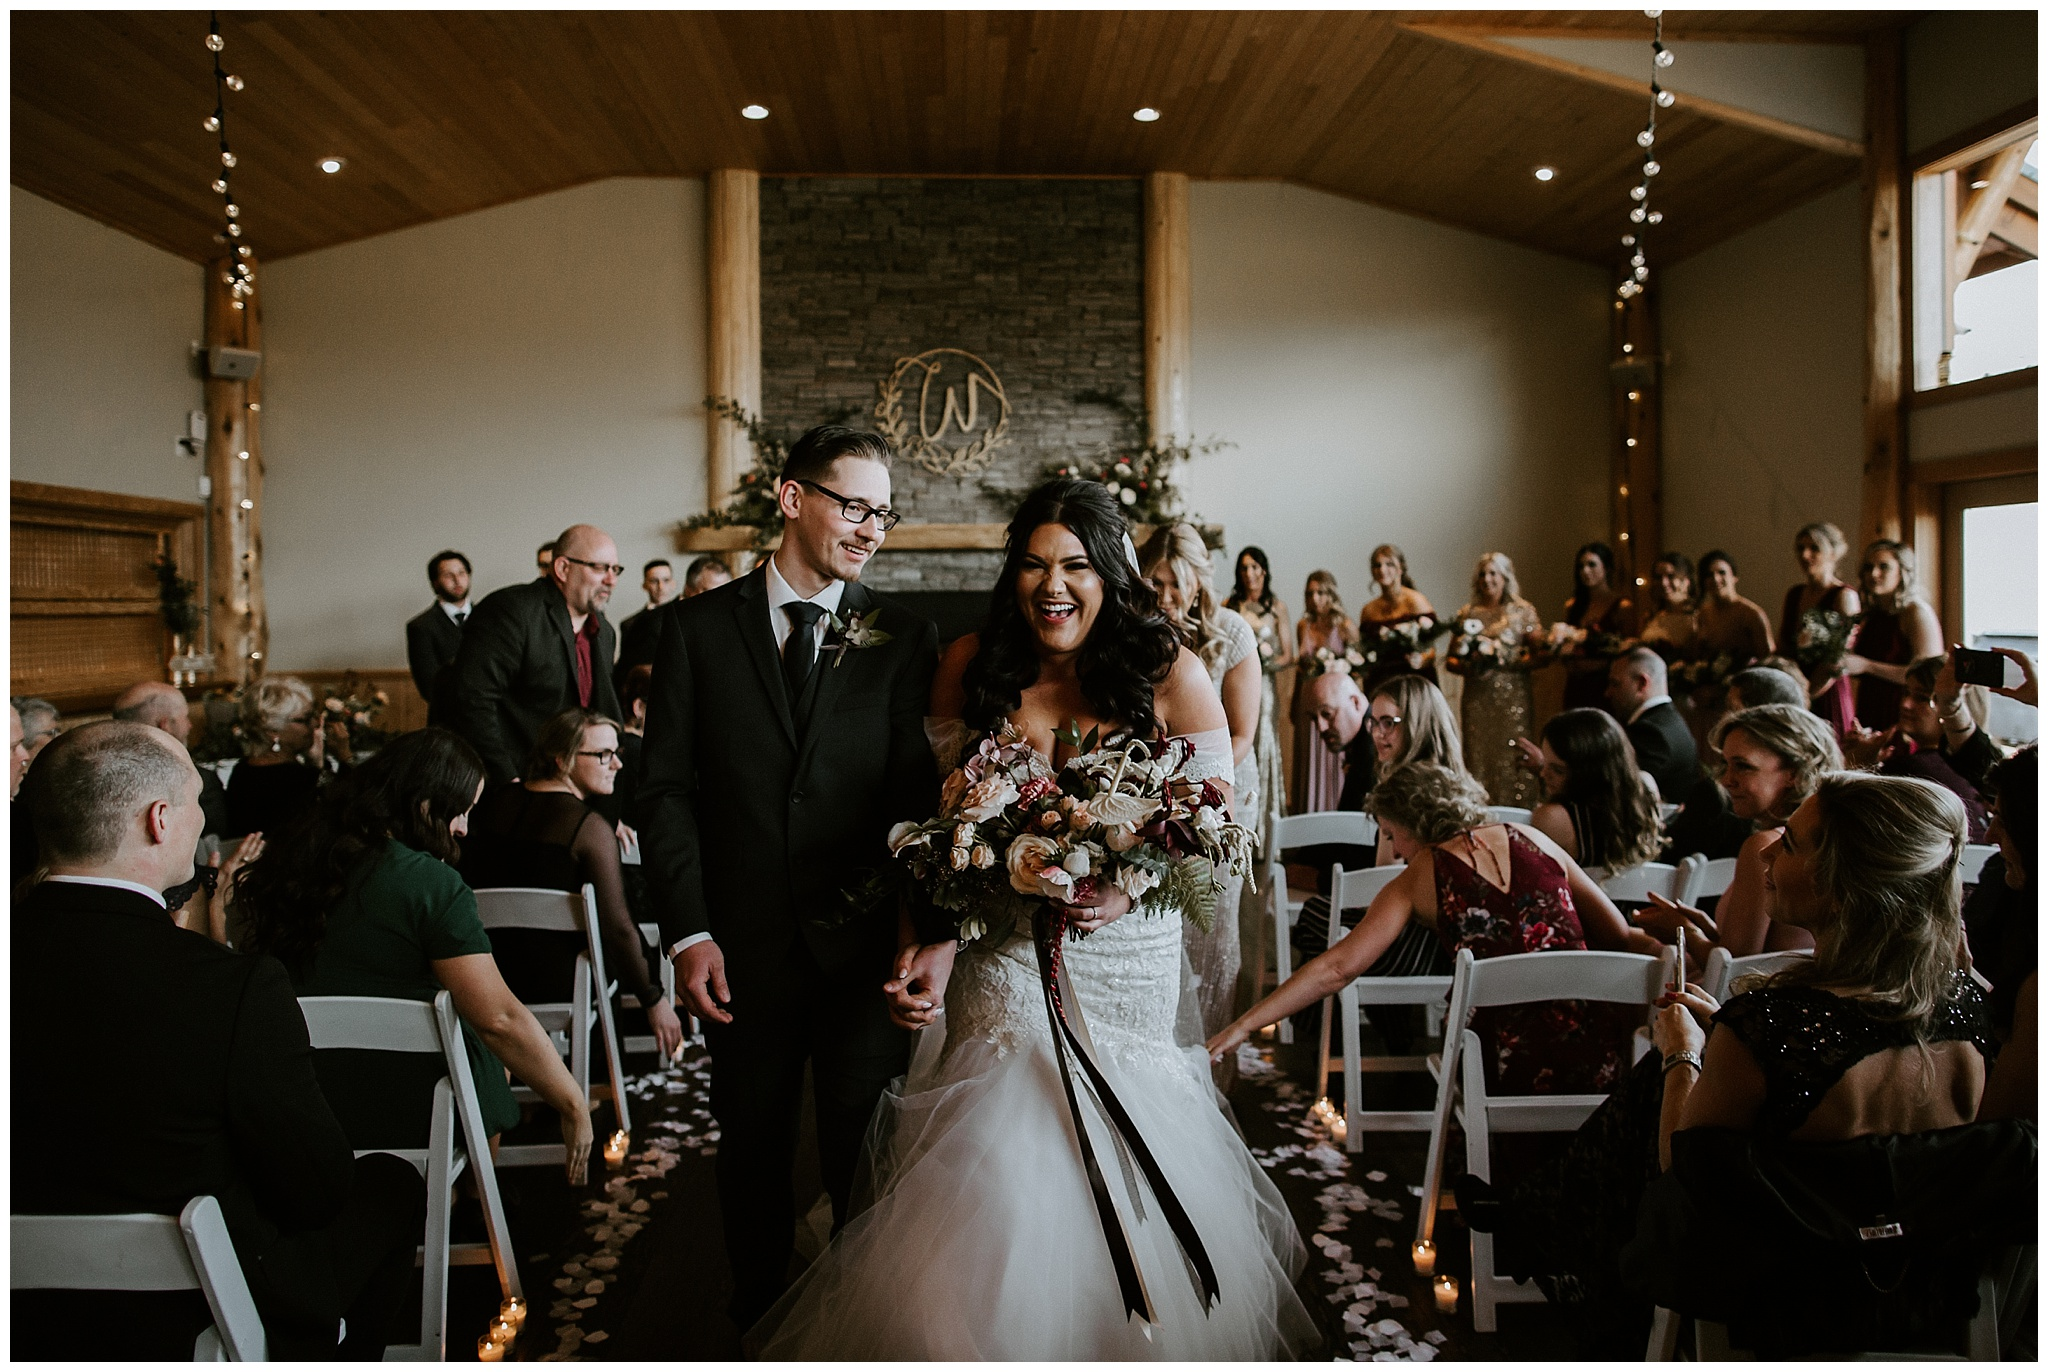 Wedding ceremony in front of the fireplace at the Fraser River Lodge.